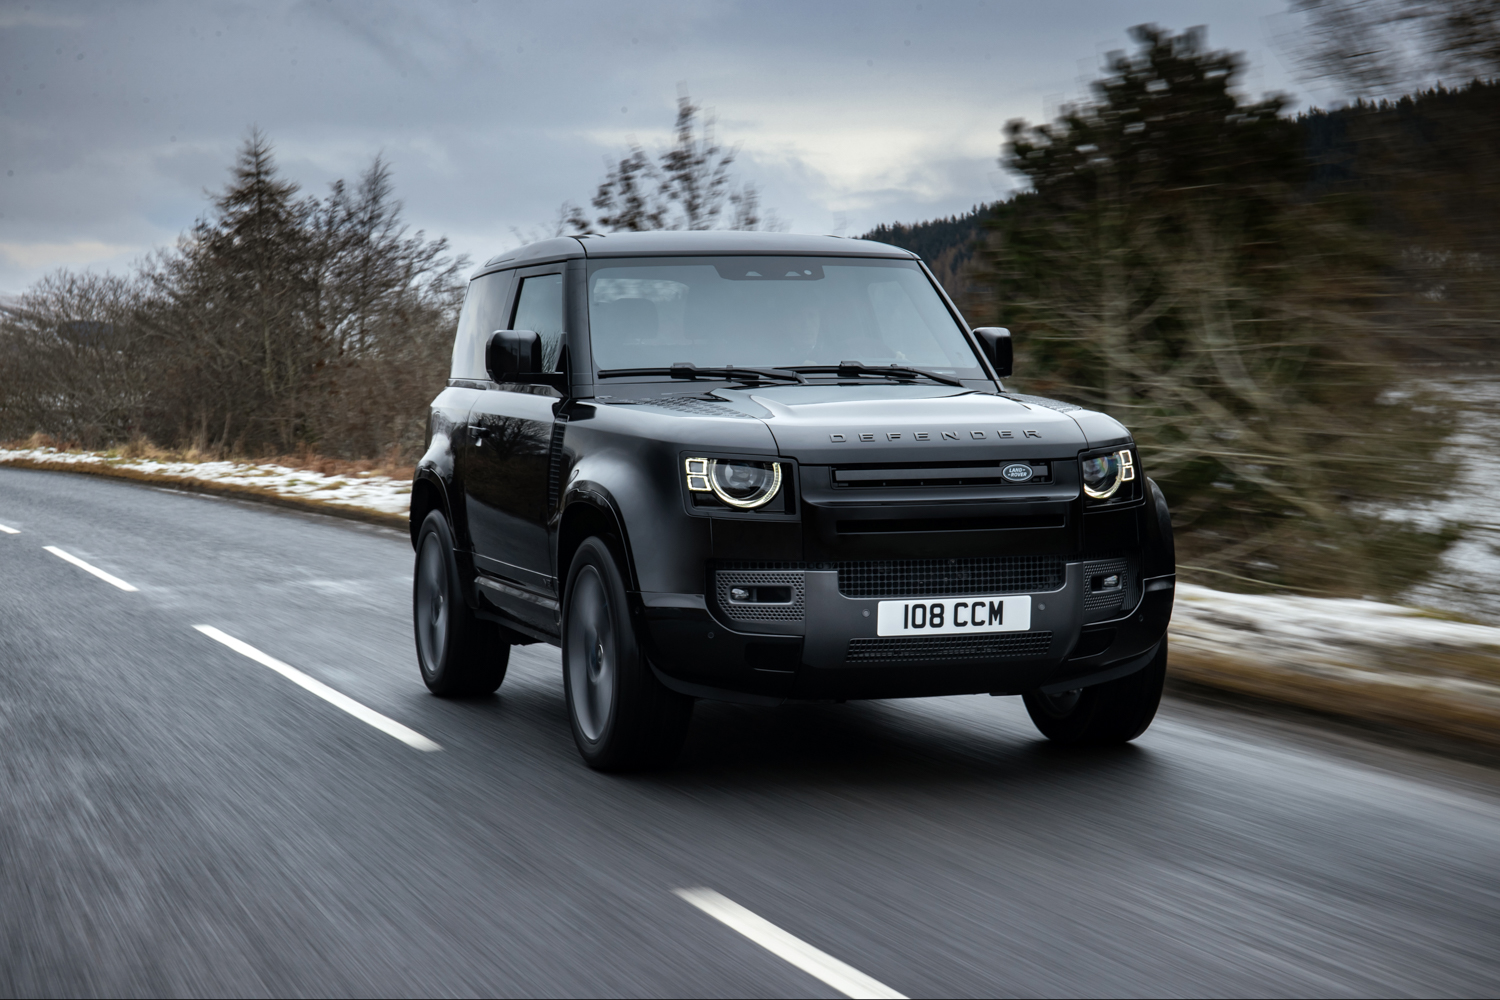 Car News | Land Rover shows off V8-engined Defender | CompleteCar.ie